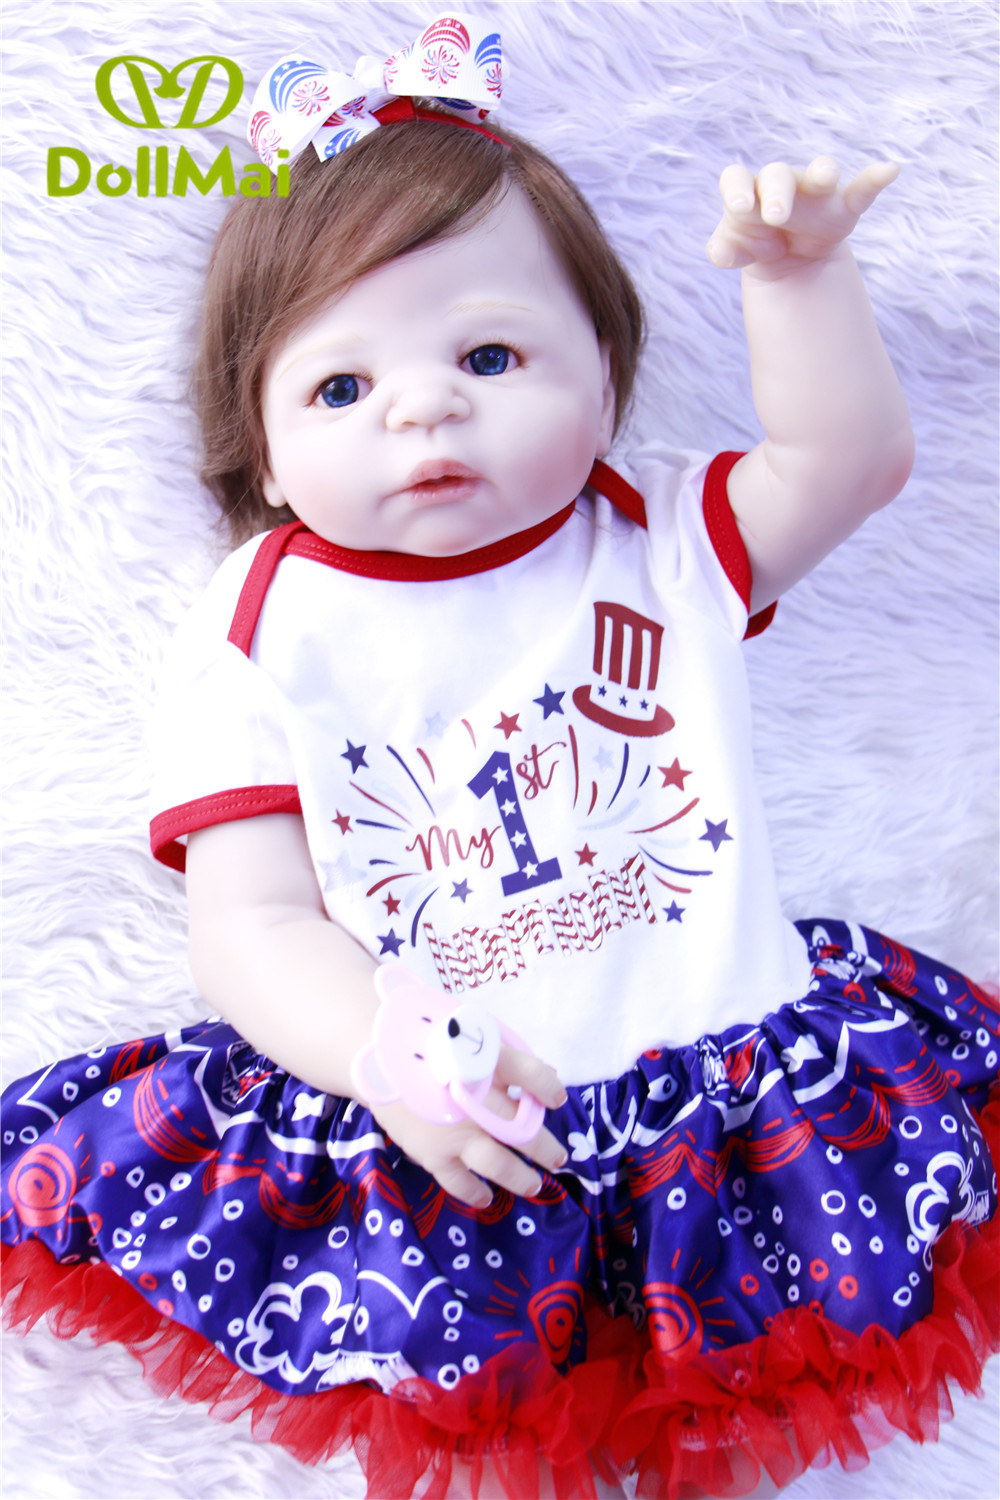 Baby doll reborn for sale  57cm full silicone reborn baby girl dolls like real human hair rooted bebes reborn child gift toysBaby doll reborn for sale  57cm full silicone reborn baby girl dolls like real human hair rooted bebes reborn child gift toys